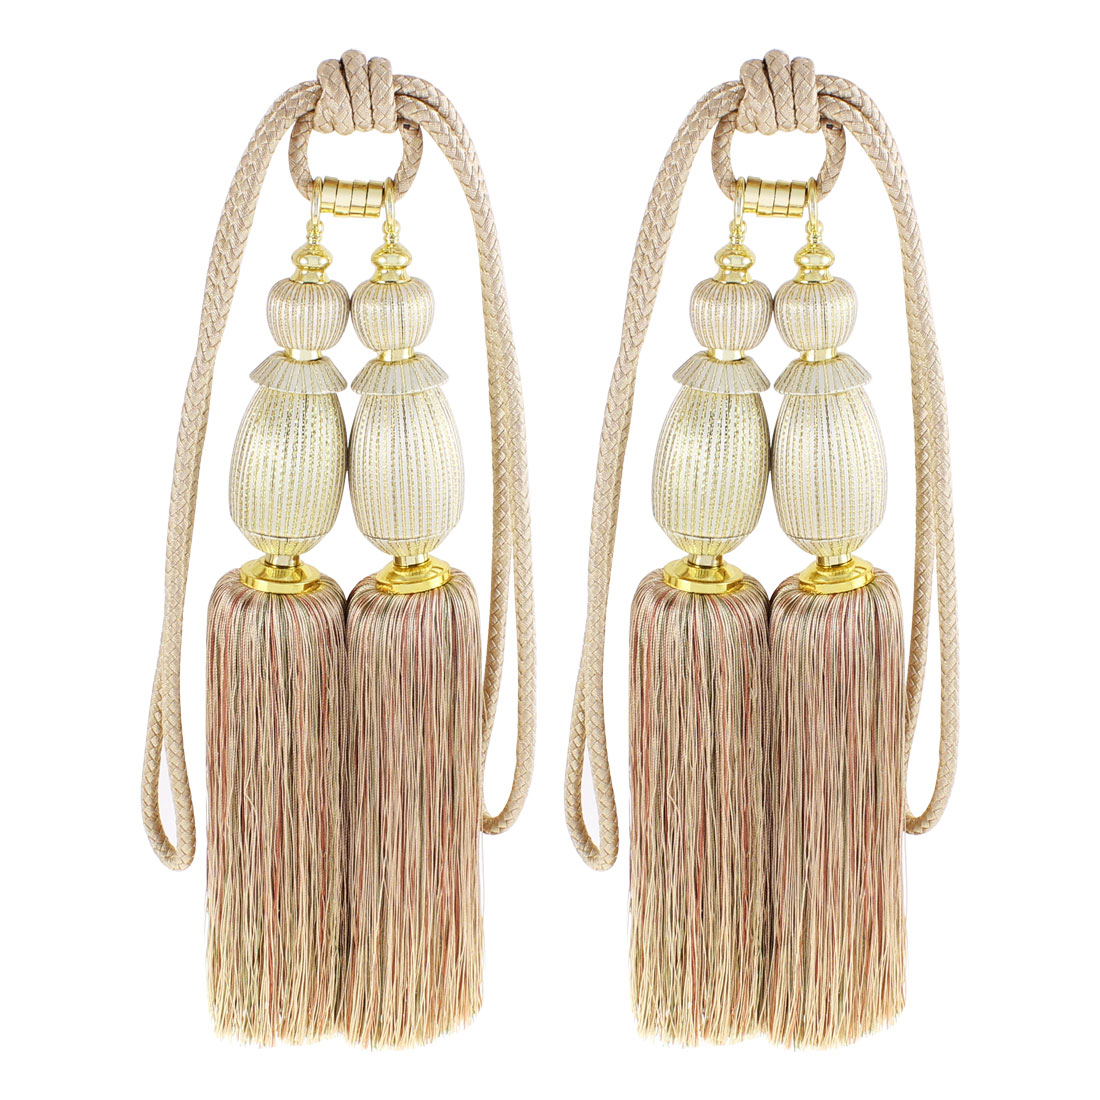 Window Curtain Dual Head Tassel Tie Backs 2Pcs